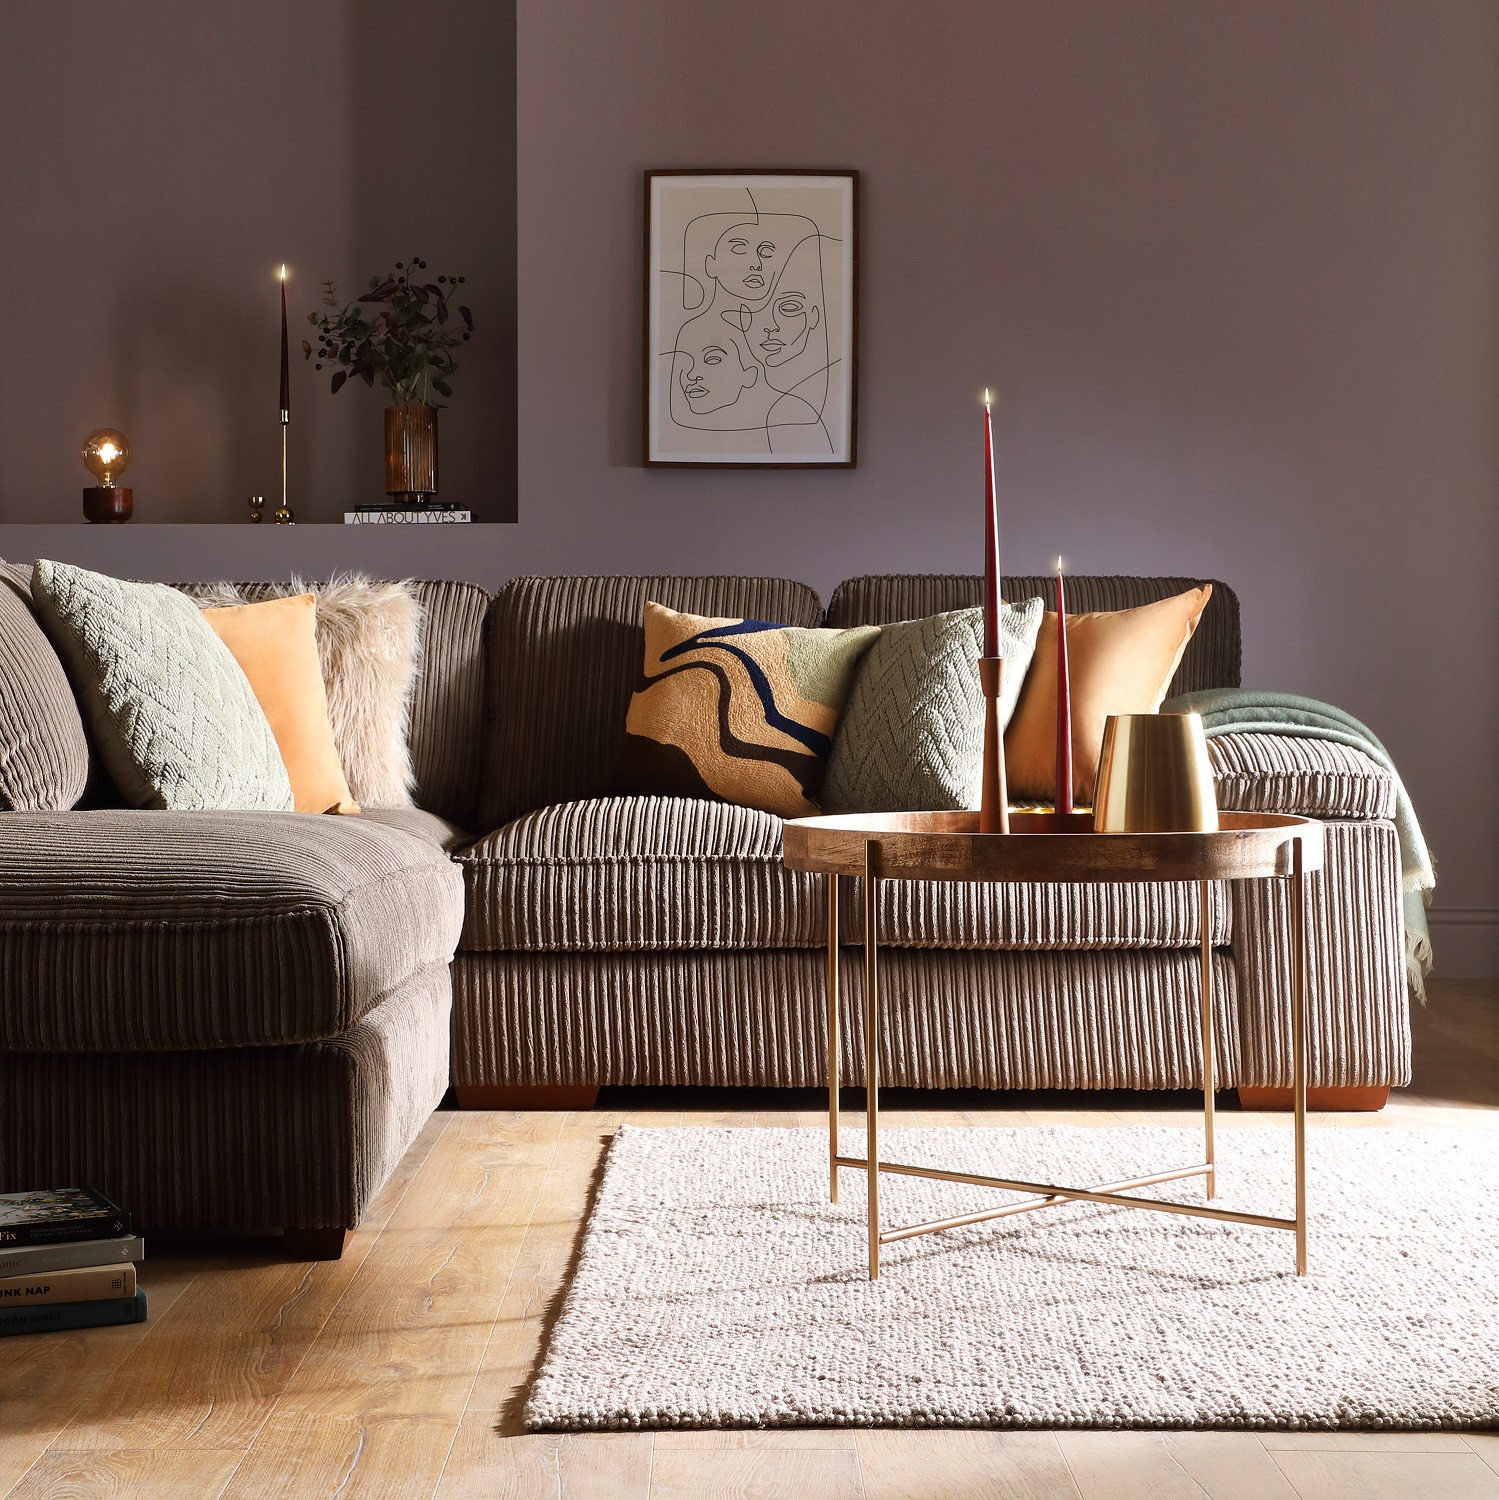 Inglenook, a cool grey with a lilac hint, sets the tone in this Furniutre and Choice living room